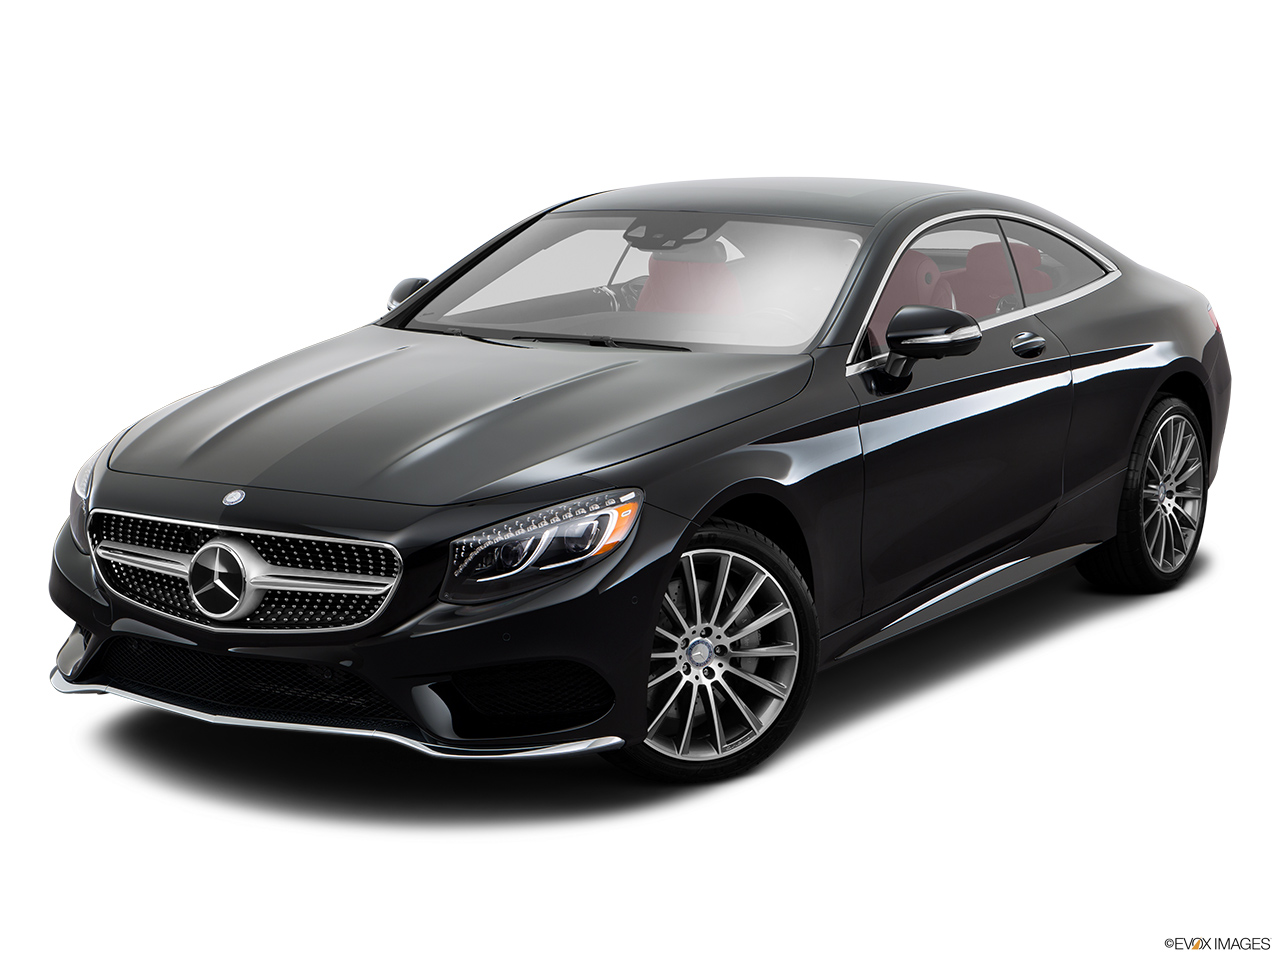 2016 mercedes benz s class coupe prices in uae gulf specs for Mercedes benz s class coupe price